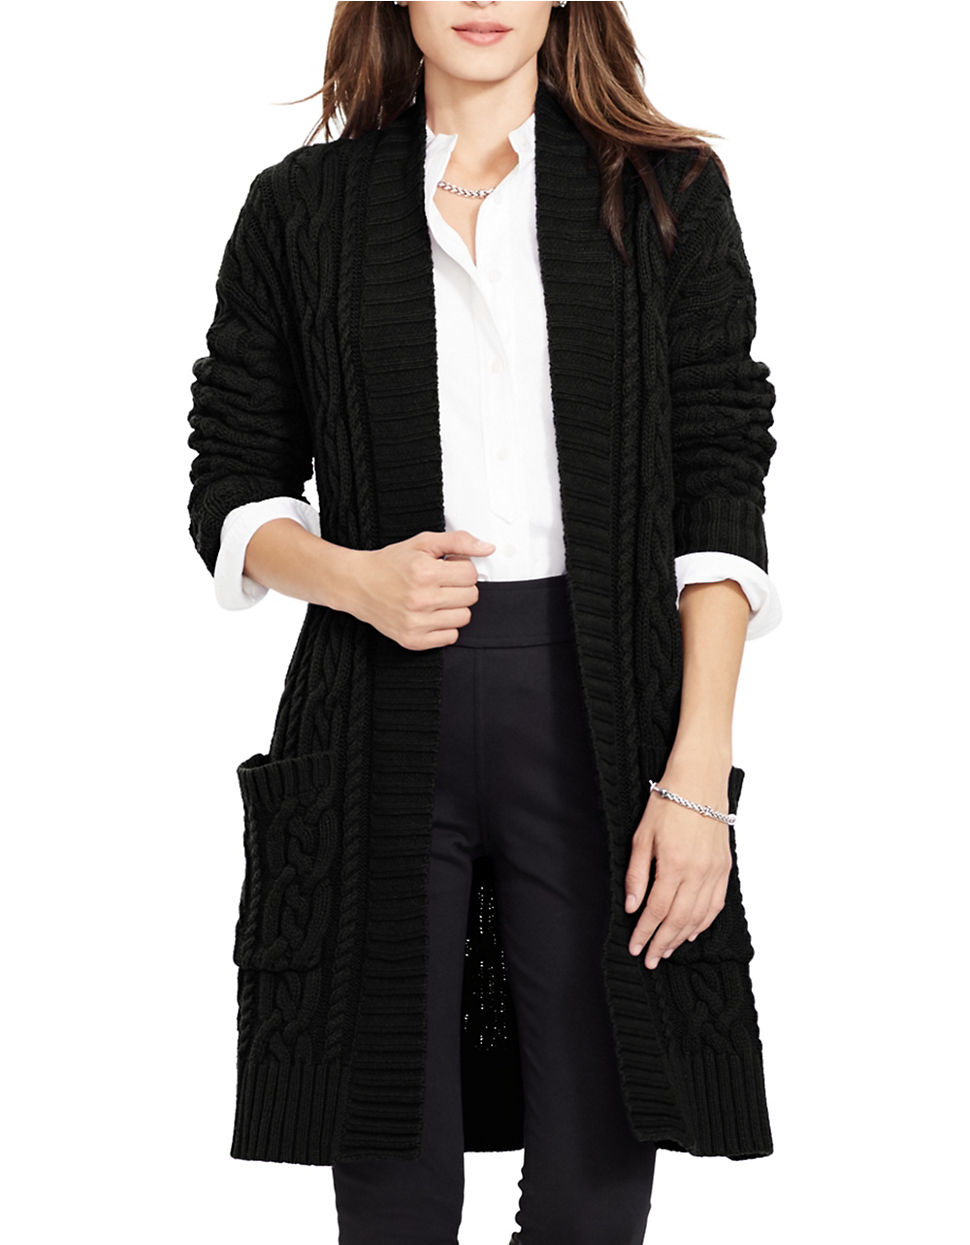 Lauren by ralph lauren Petite Cable-knit Open-front Cardigan in ...